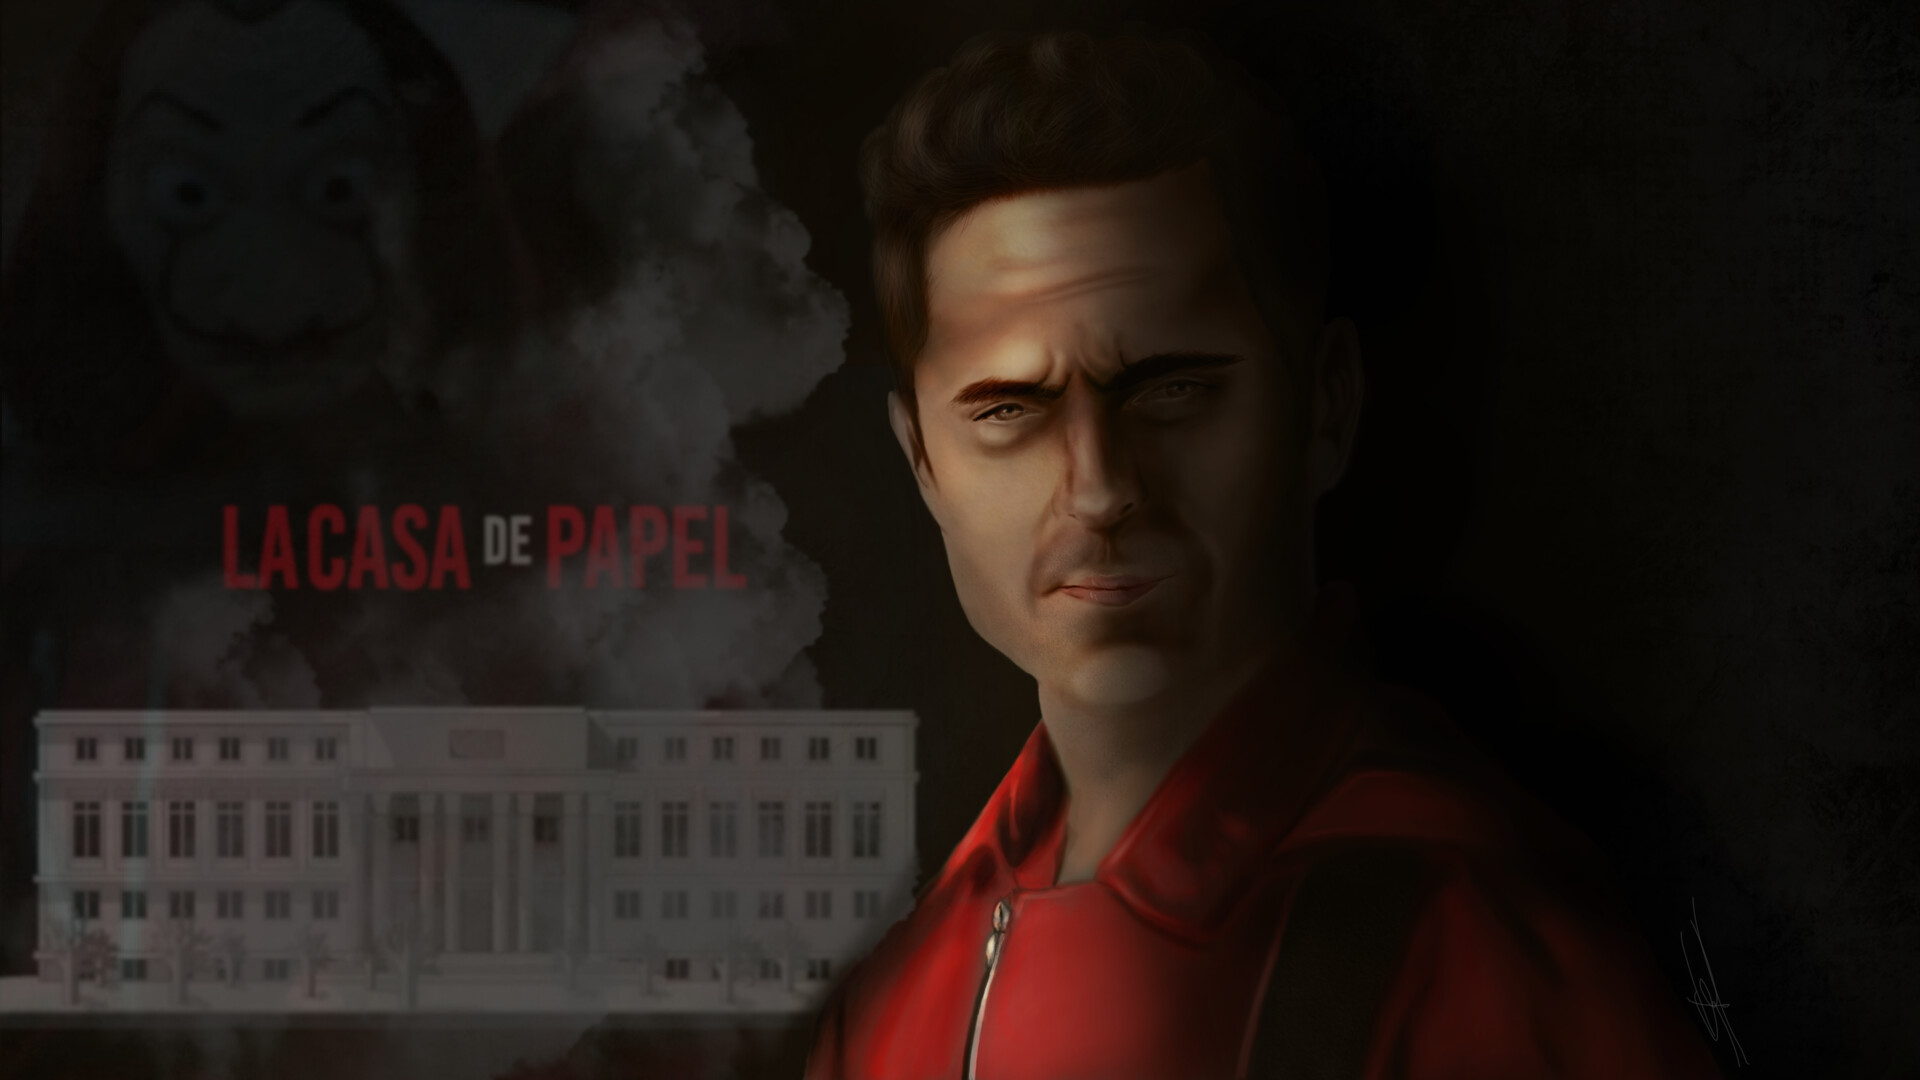 La Casa De Papel Berlin Wallpapers Posted By Samantha Sellers